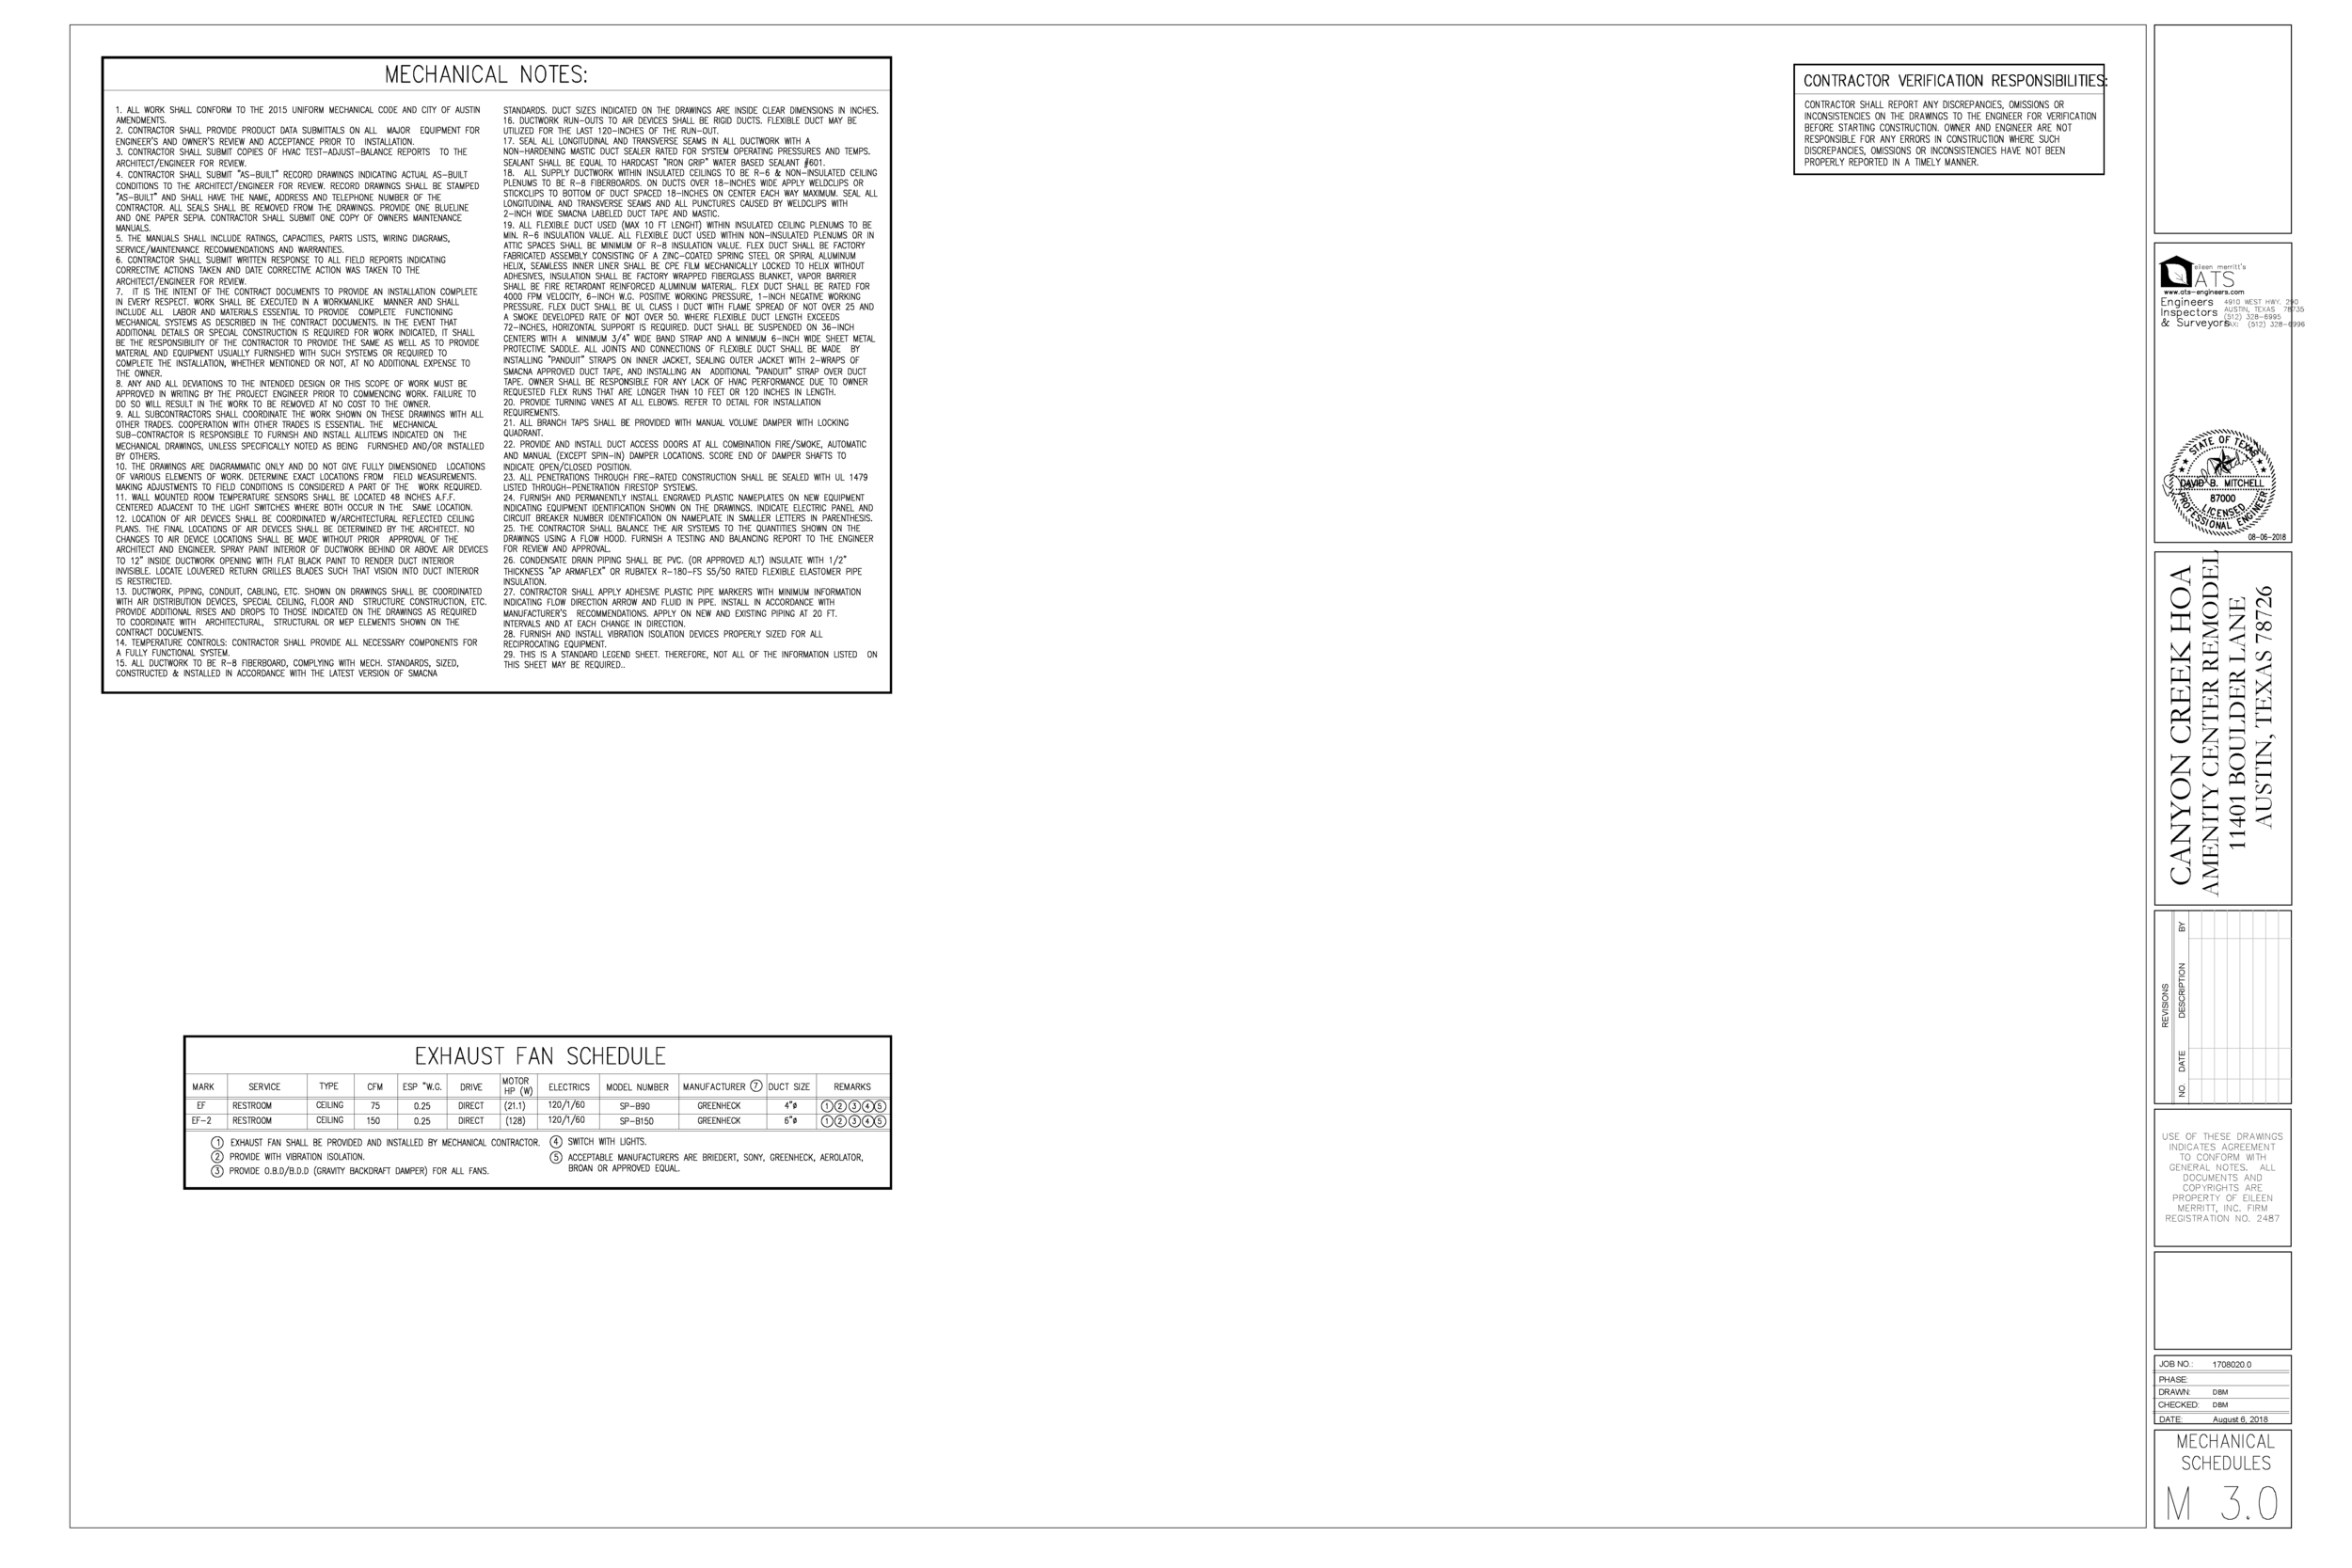 2018-08-06 (Draw 3) 11401 CANYON CREEK - MEP - V.2 PERMIT_Page_07.png